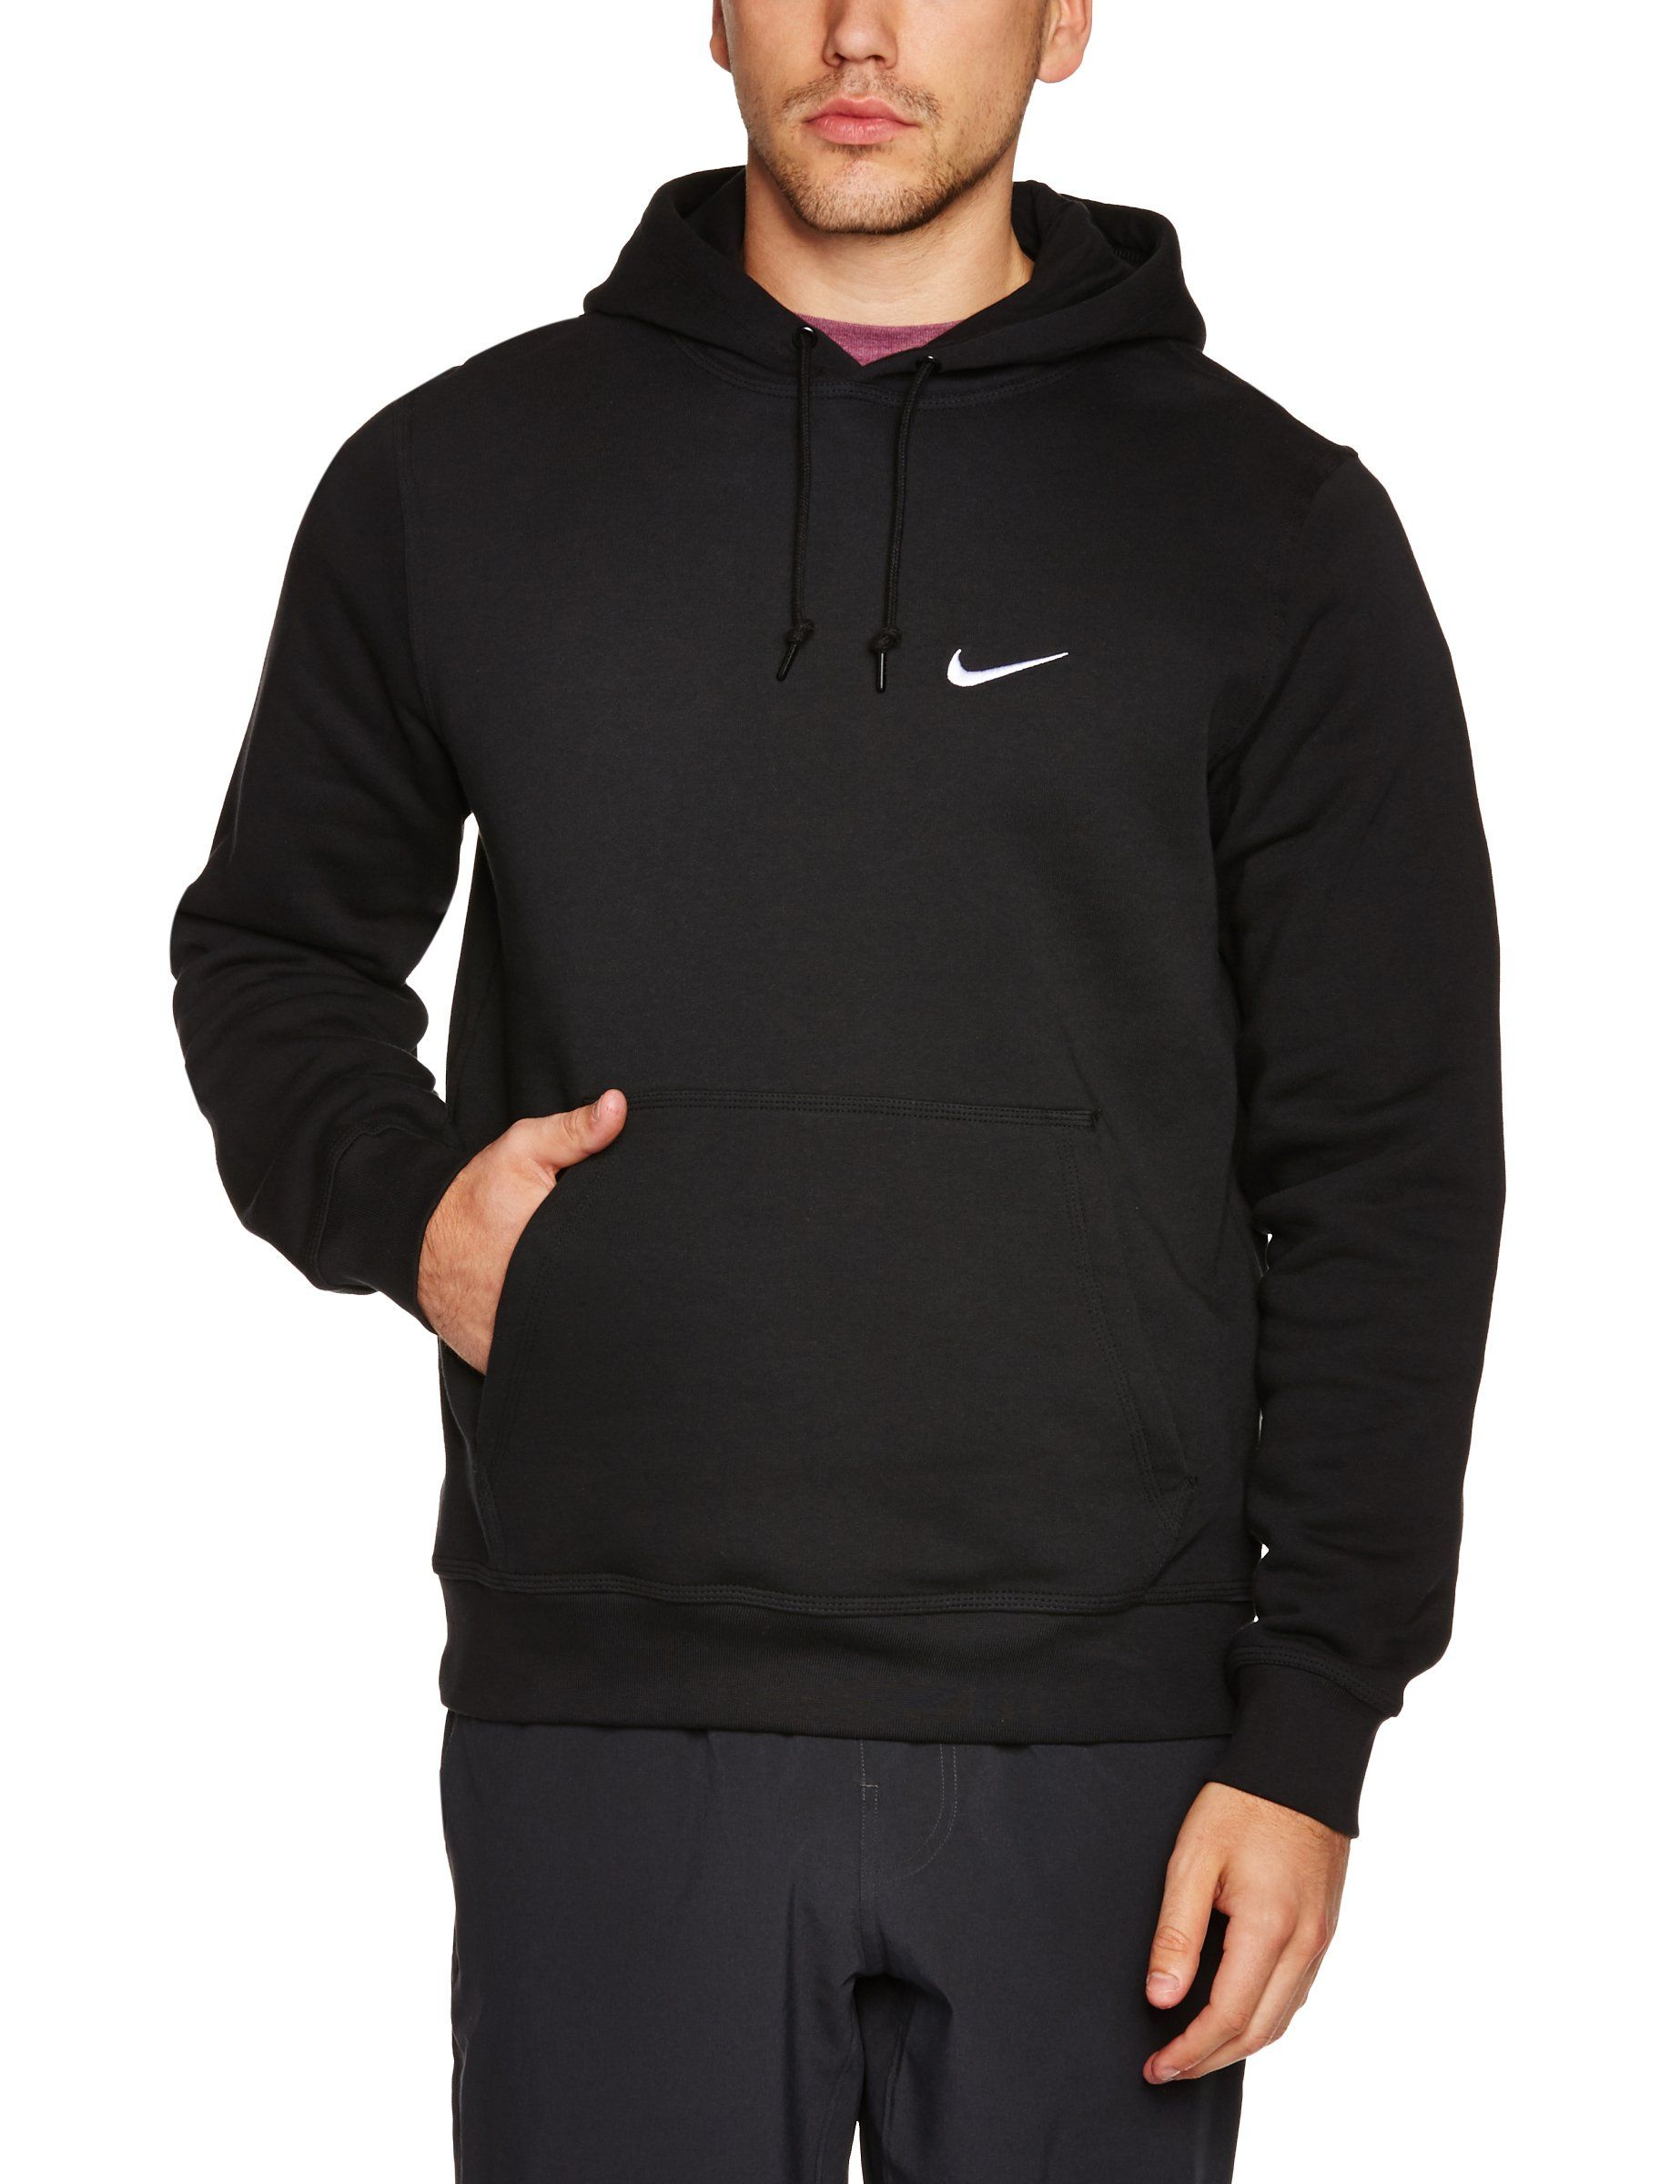 Nike Men's Club Swoosh Hoody Long Sleeve Top: Amazon.co.uk: Sports